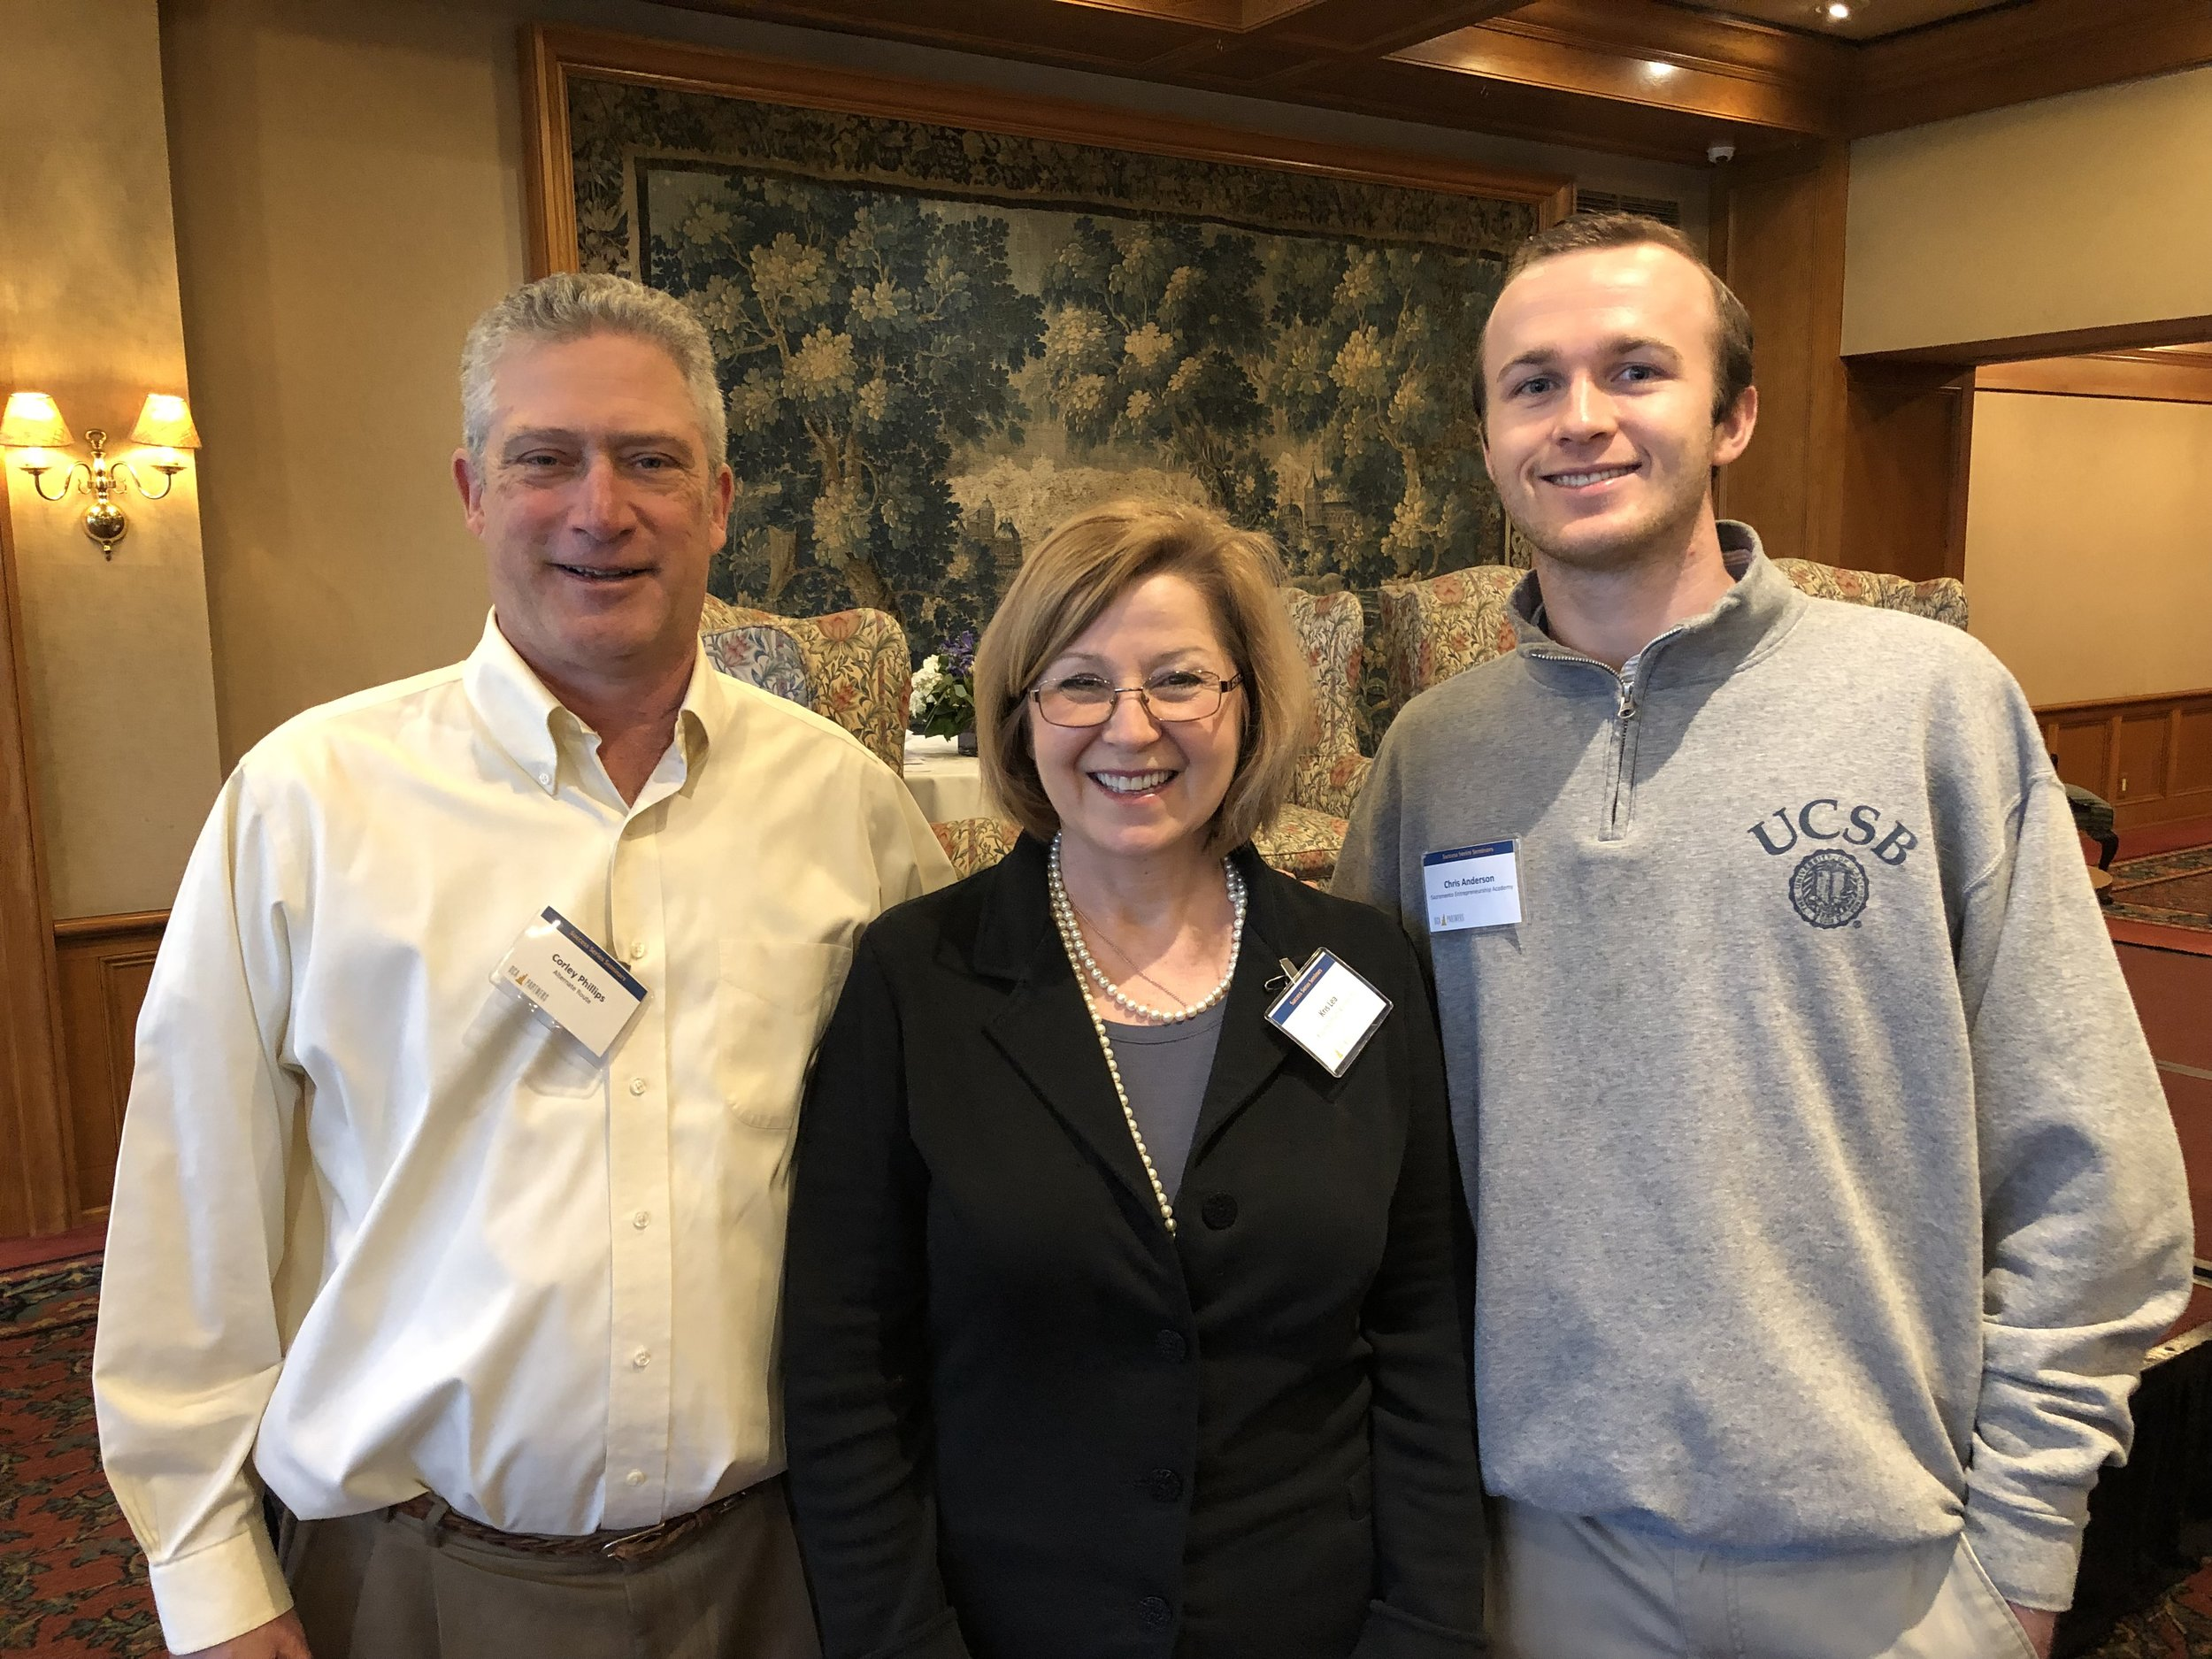 SEA Board Member Corley Phillips with 2019 Fellows Kris Lea and Christopher Nolan